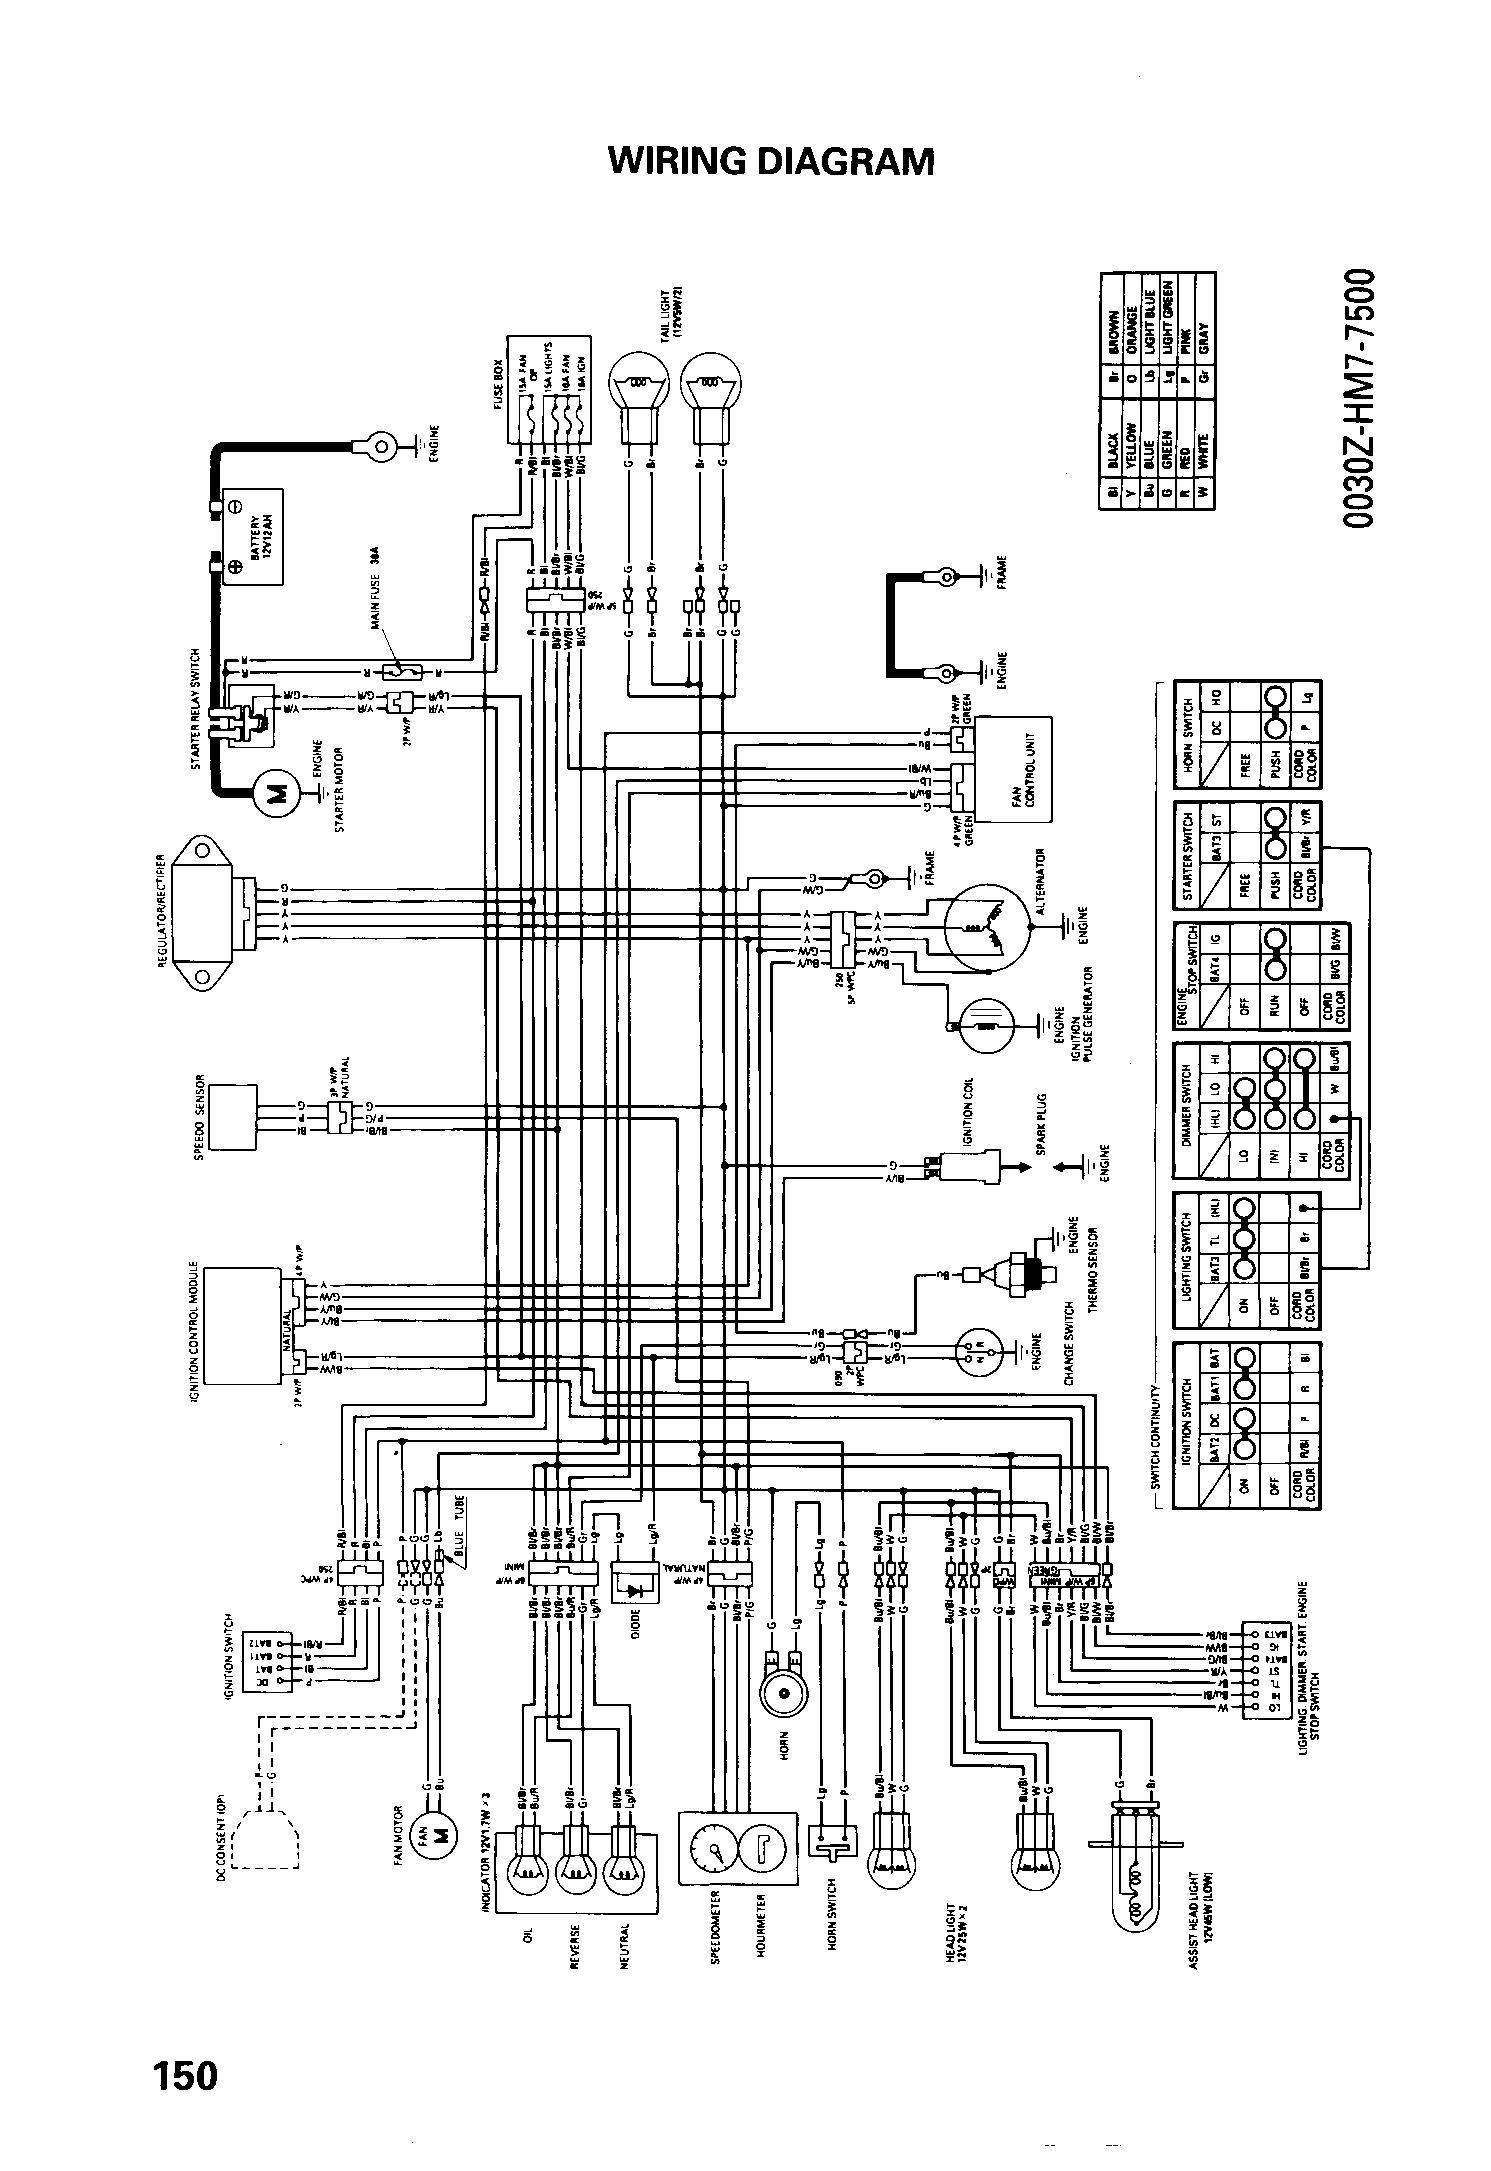 Honda Cr80 Wiring Diagram